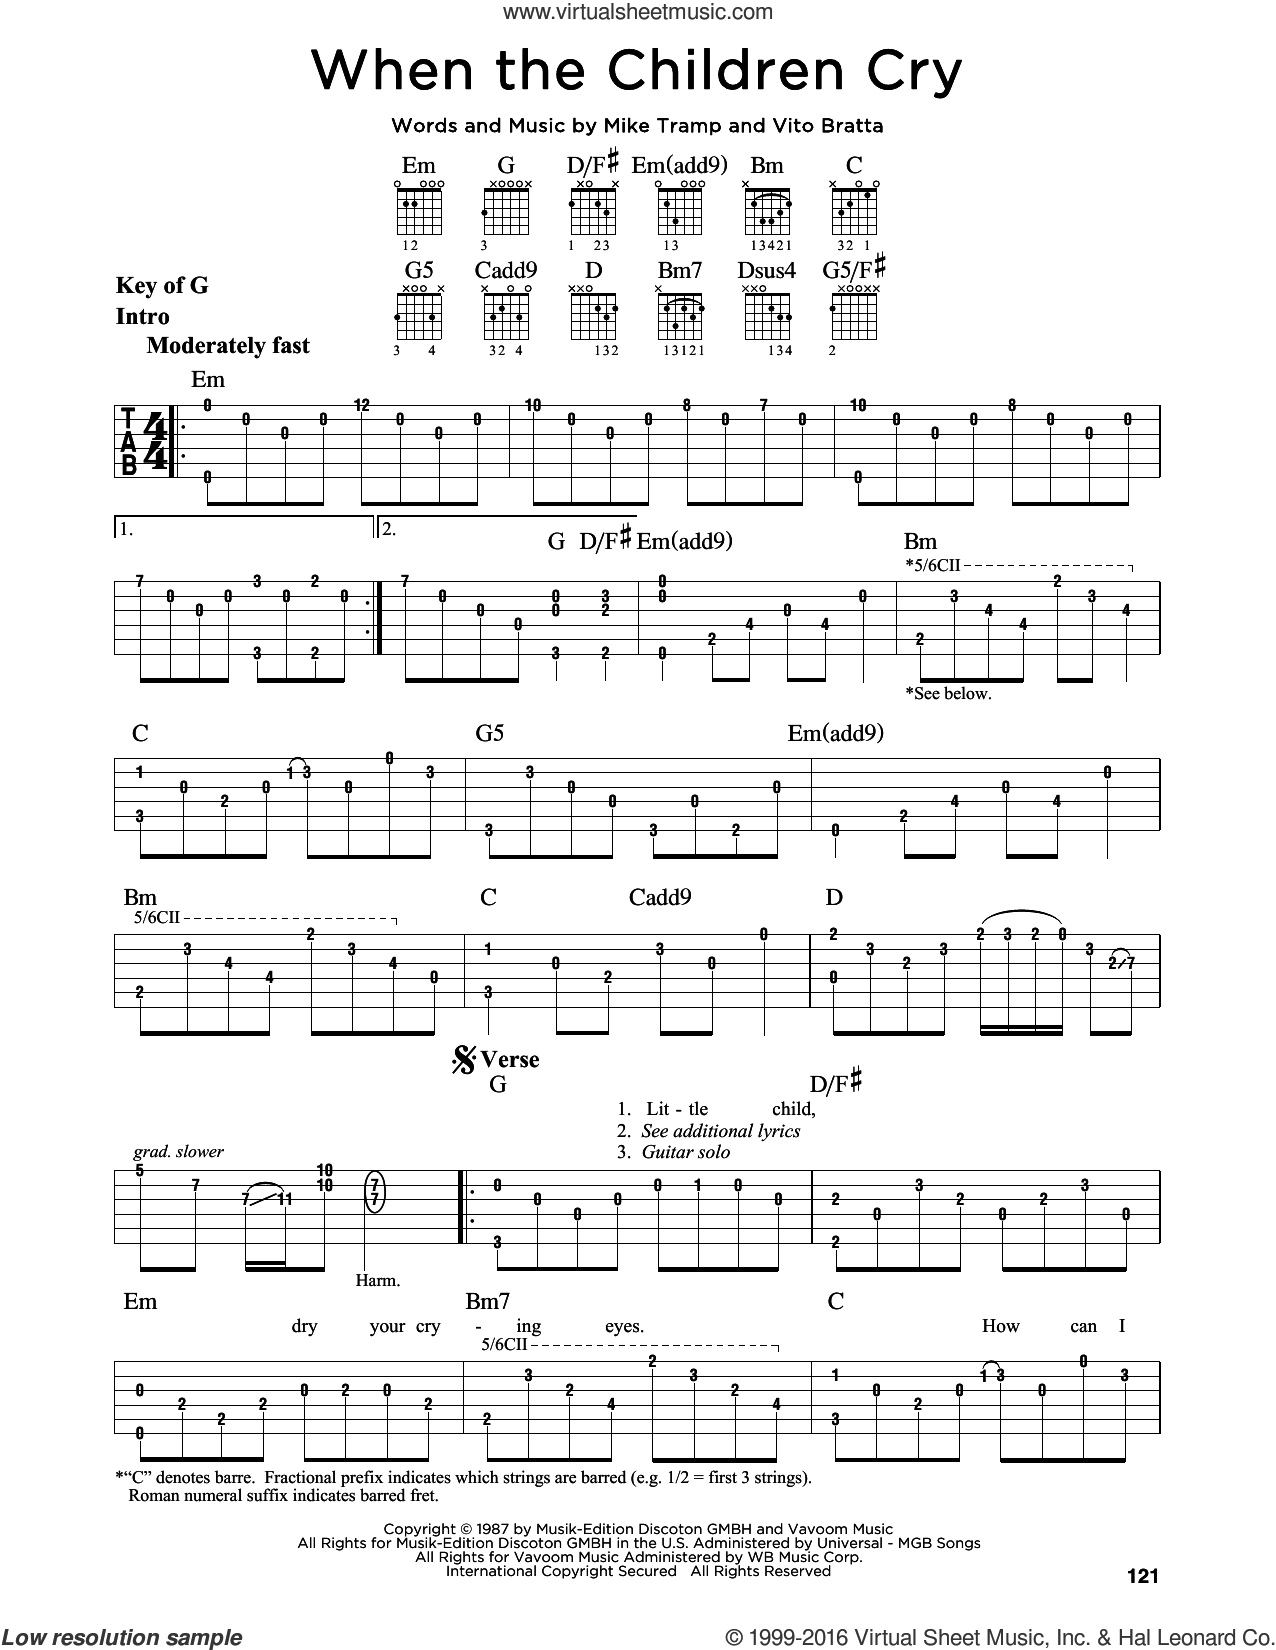 When The Children Cry sheet music for guitar solo (lead sheet) by Vito Bratta, White Lion and Mike Tramp. Score Image Preview.